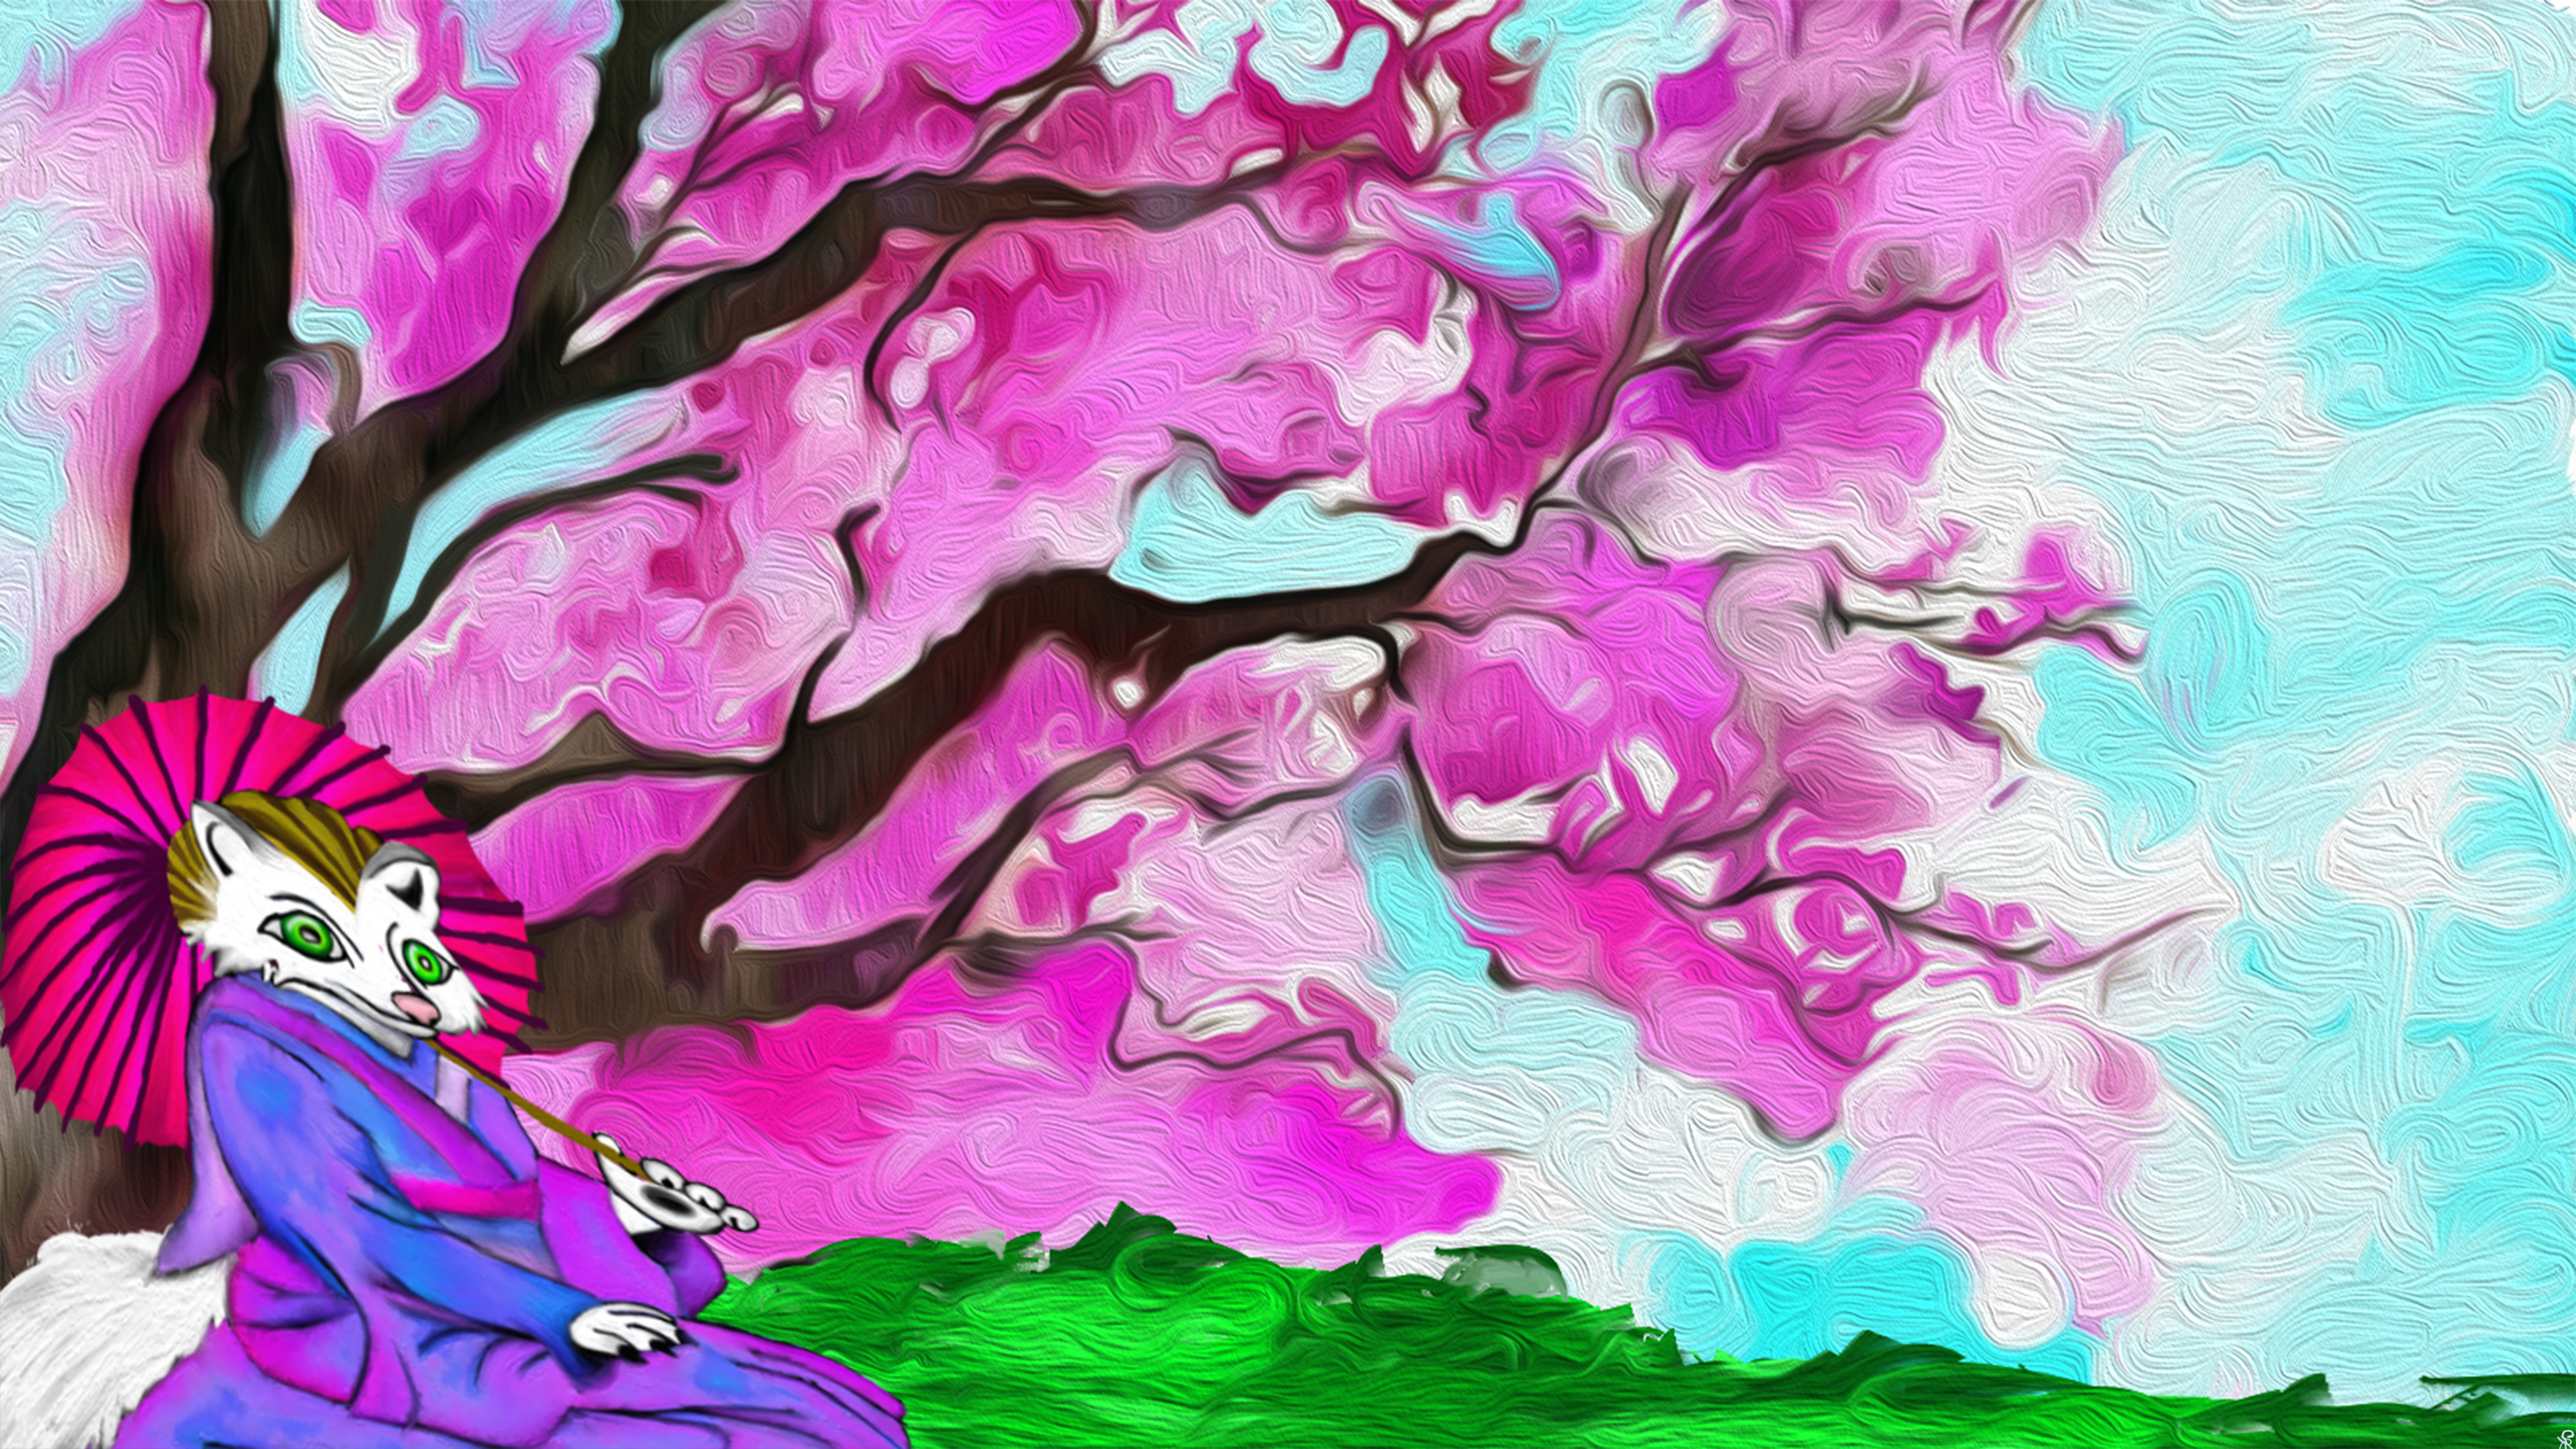 The Japans Fox Sitting By A CherryBlossom Tree by TechBehr